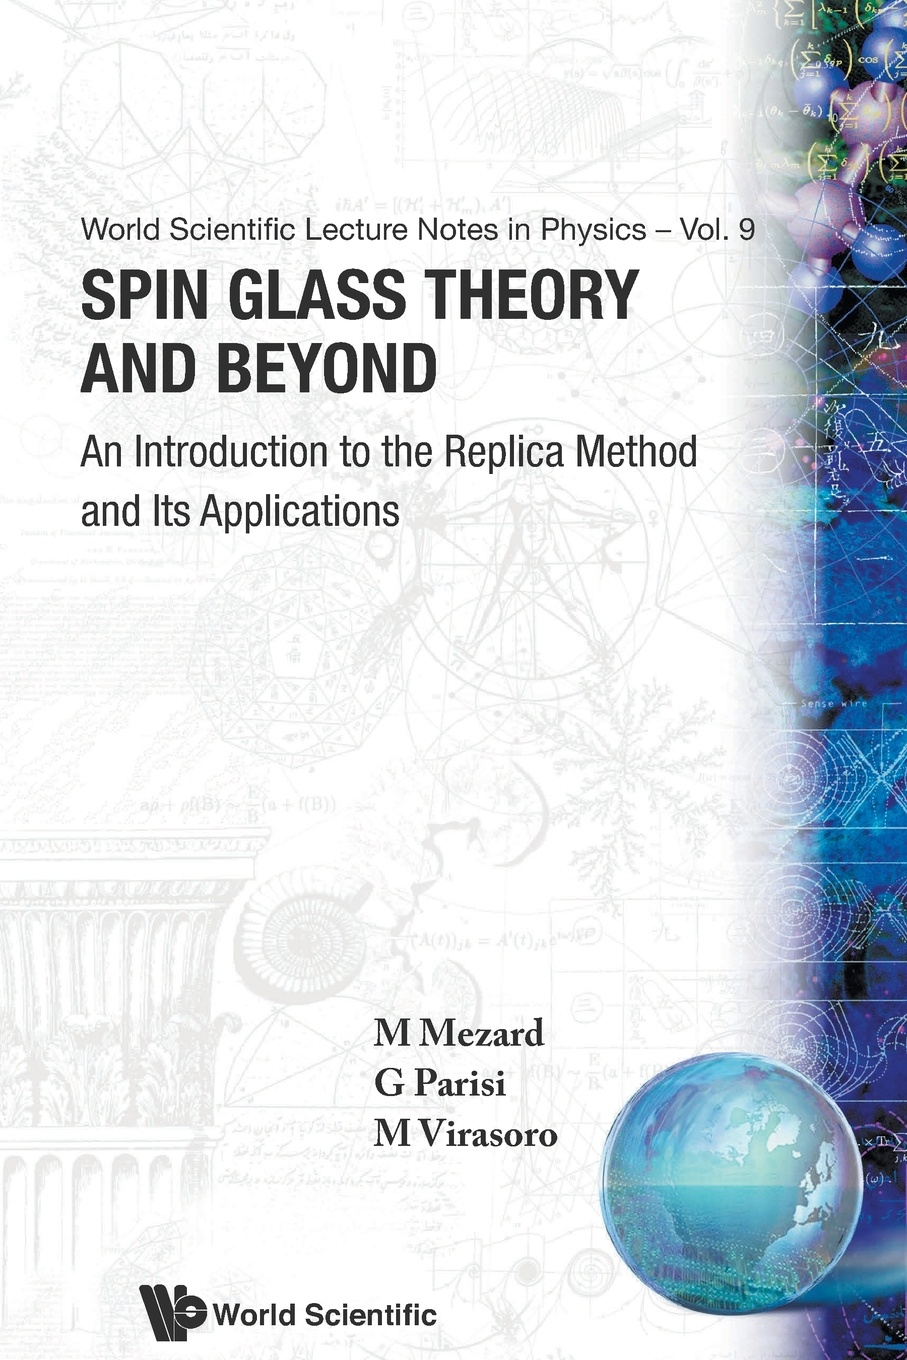 M. Mezard, G. Parisi, M. Virasoro Spin Glass Theory and Beyond. An Introduction to the Replica Method and Its Applications